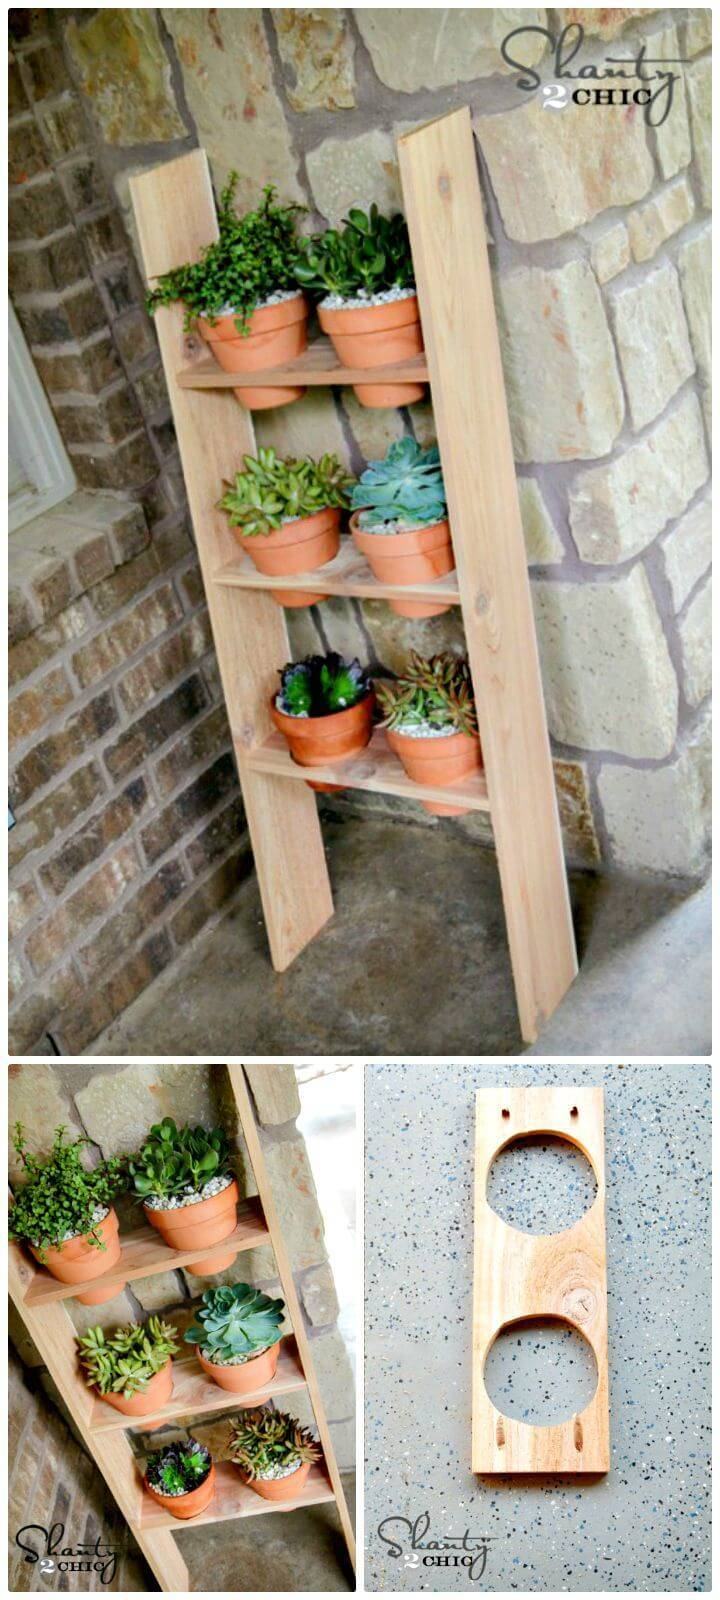 Easy How To Make Ladder Planter Under 10$ Tutorial